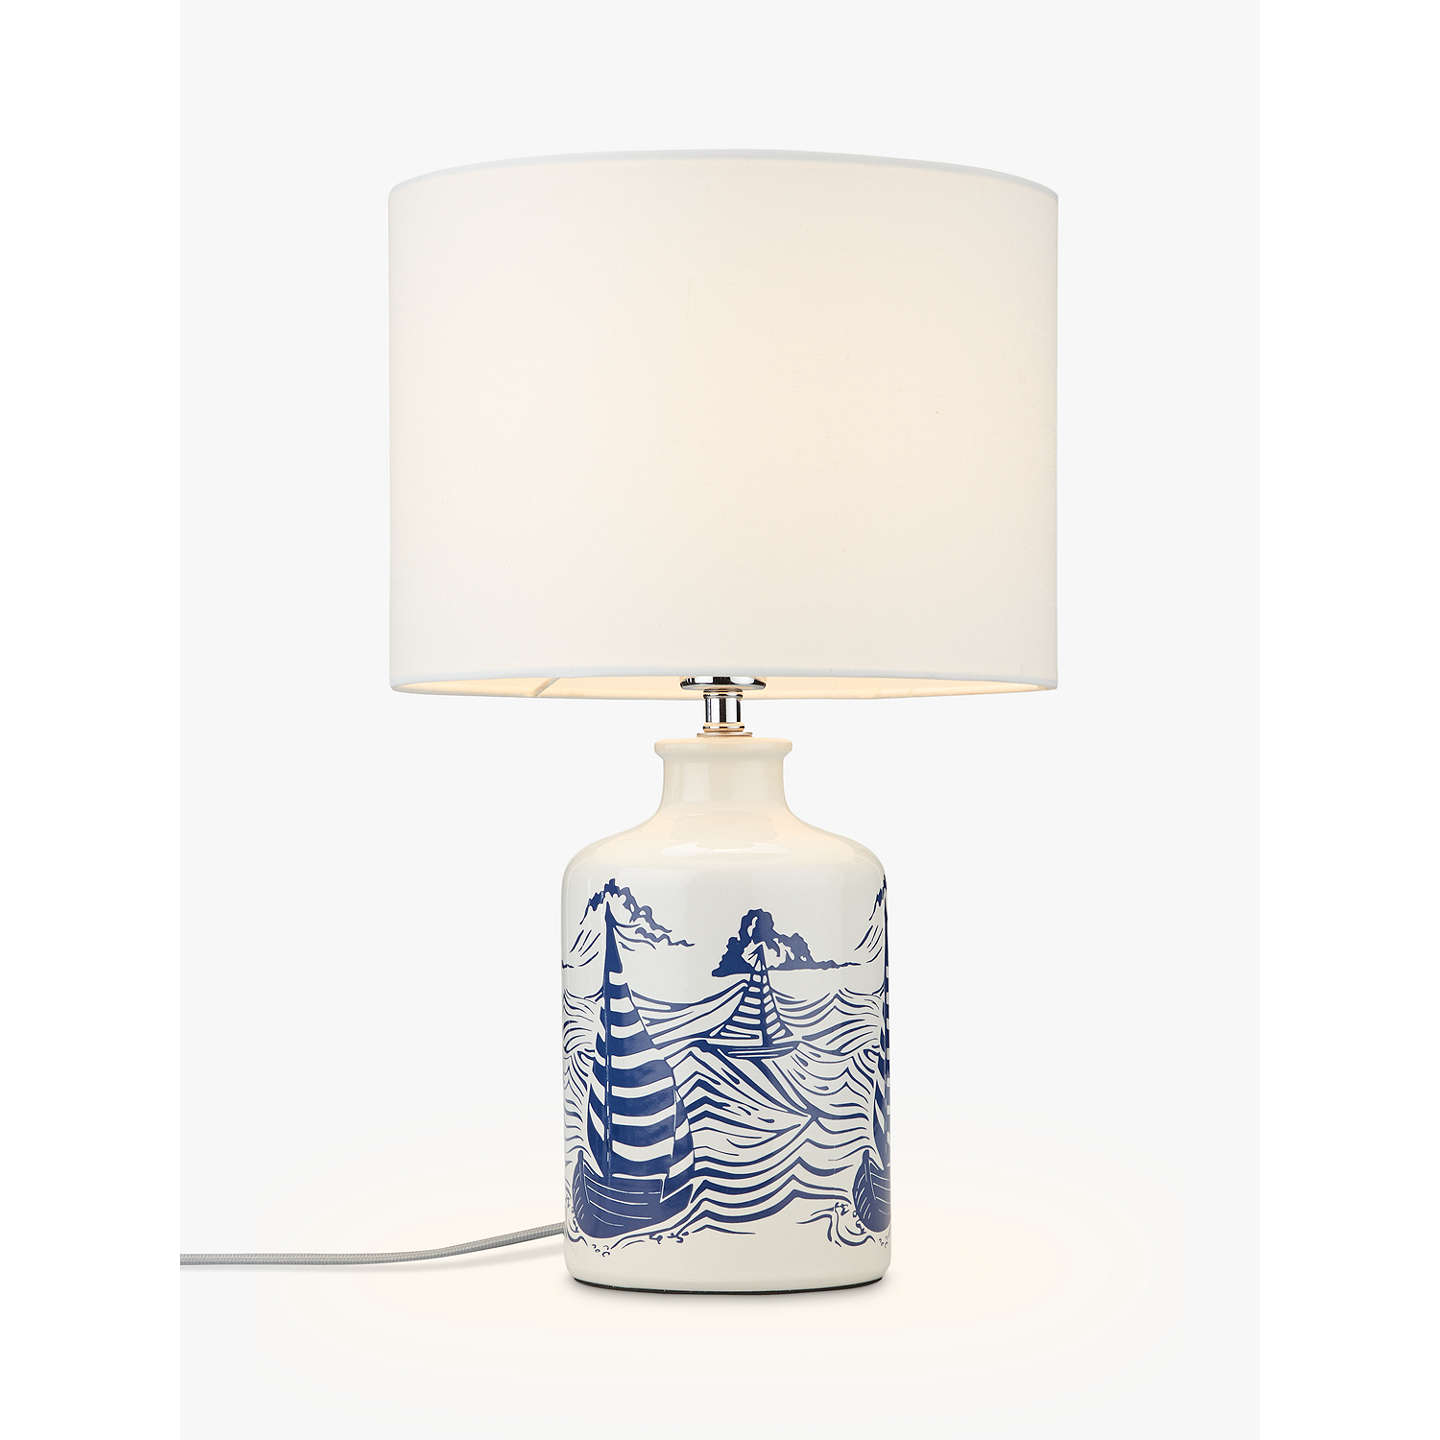 Exceptionnel BuyJohn Lewis Salcombe Boats Ceramic Table Lamp, White Online At  Johnlewis.com ...